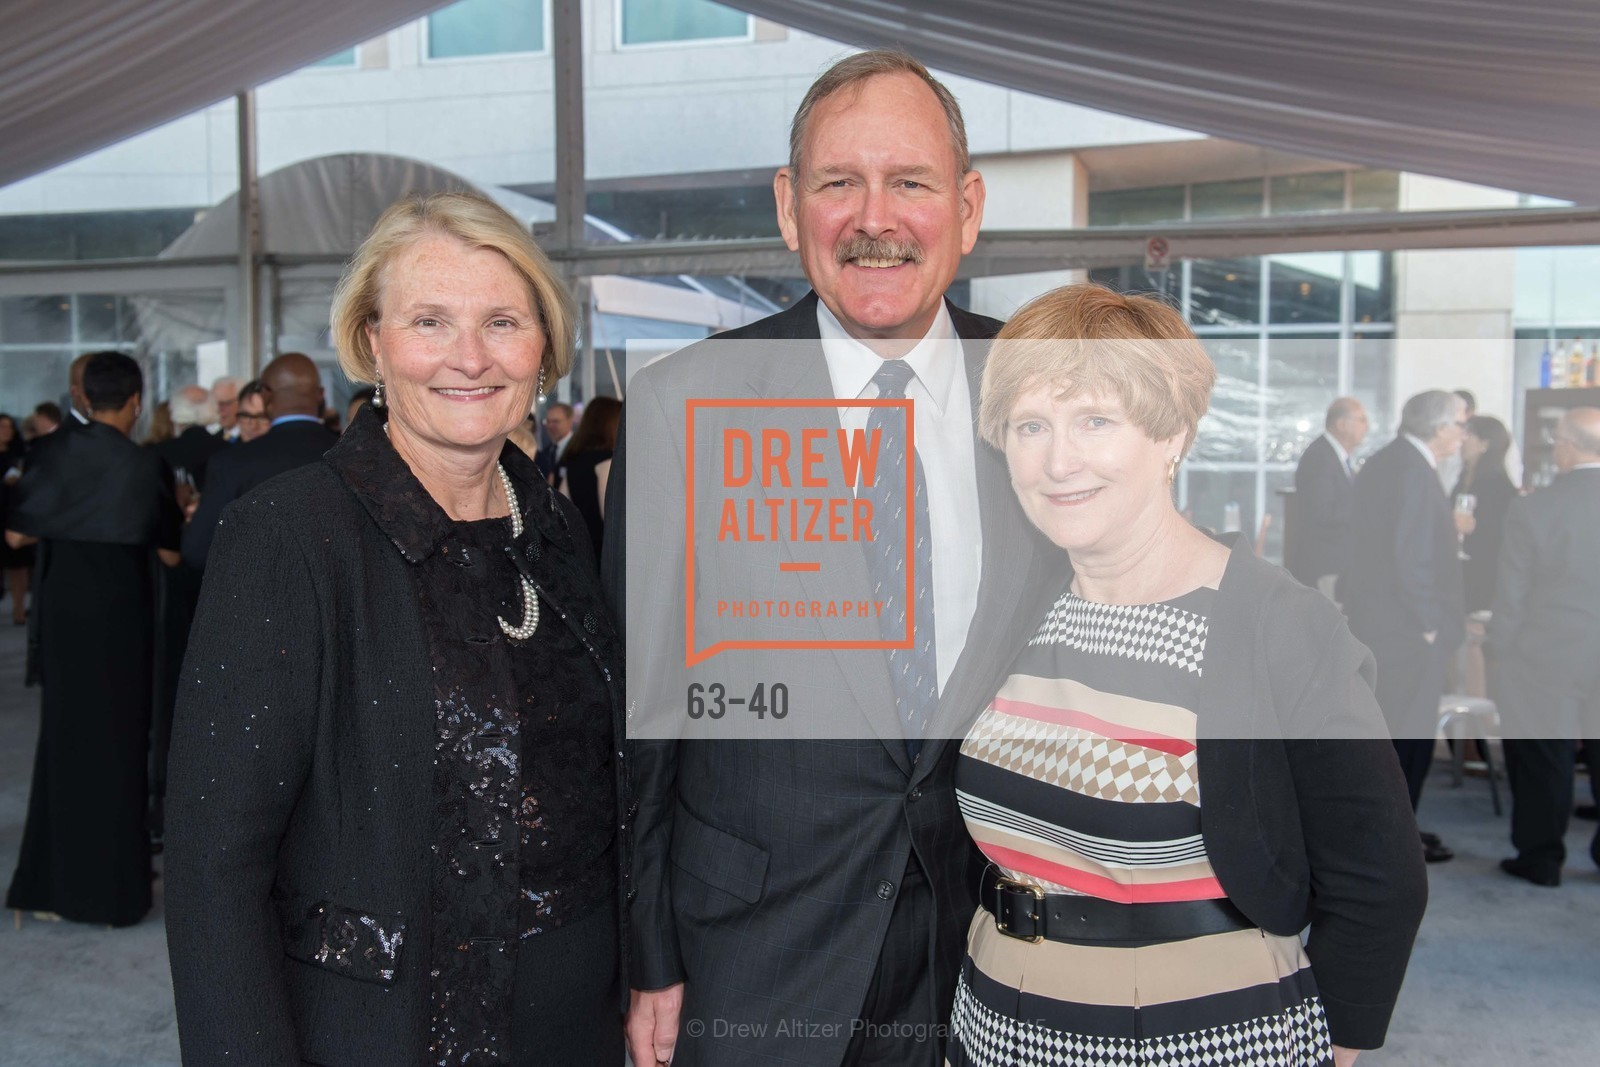 Kathy Mceligot, Bill Secor, Karen Secor,  Catholic Charities Loaves & Fishes, St. Regis, April 18th, 2015,Drew Altizer, Drew Altizer Photography, full-service agency, private events, San Francisco photographer, photographer california